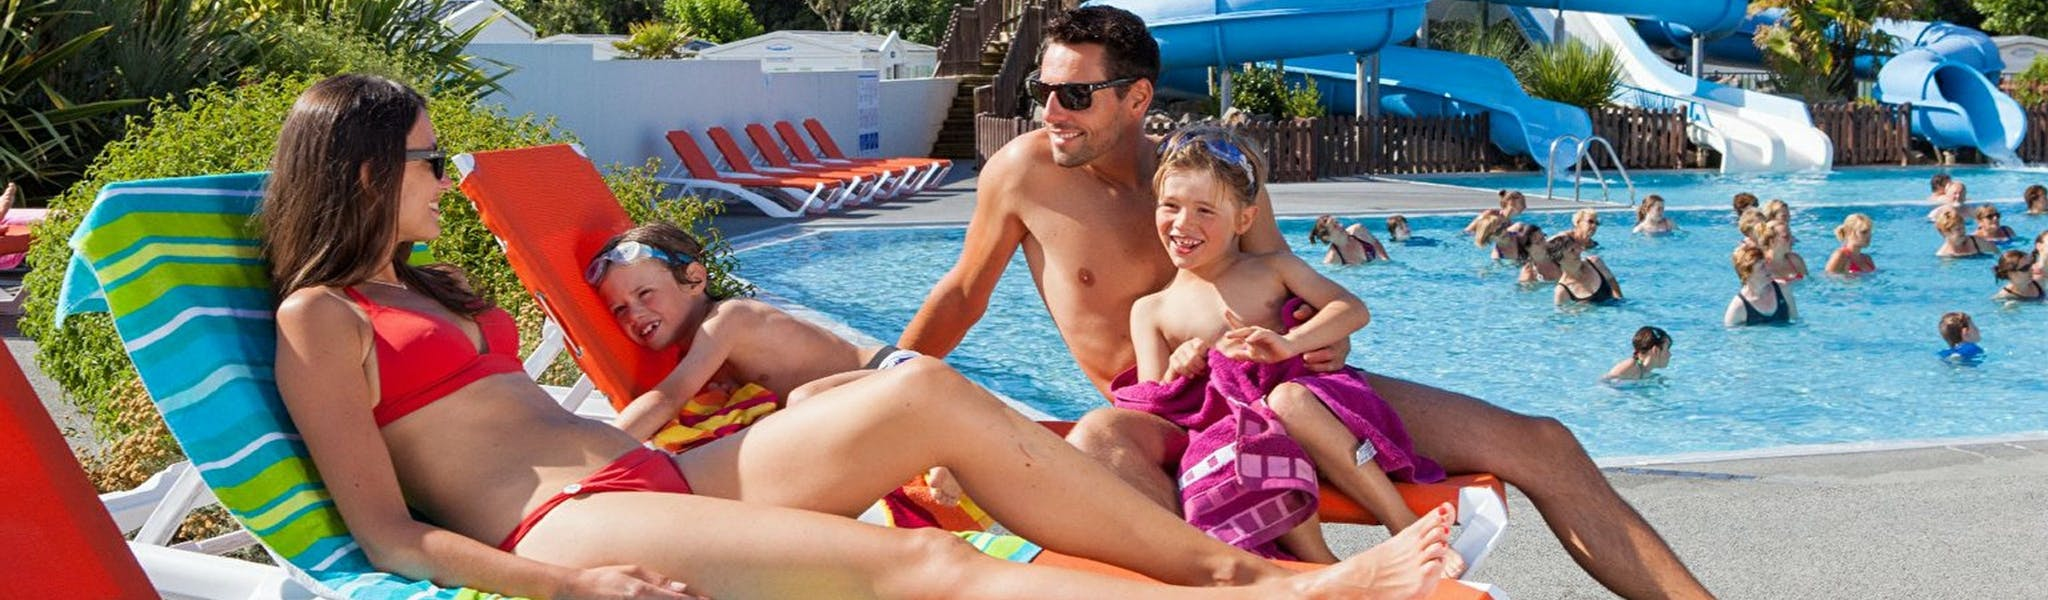 Camping Le Littoral - Vendee